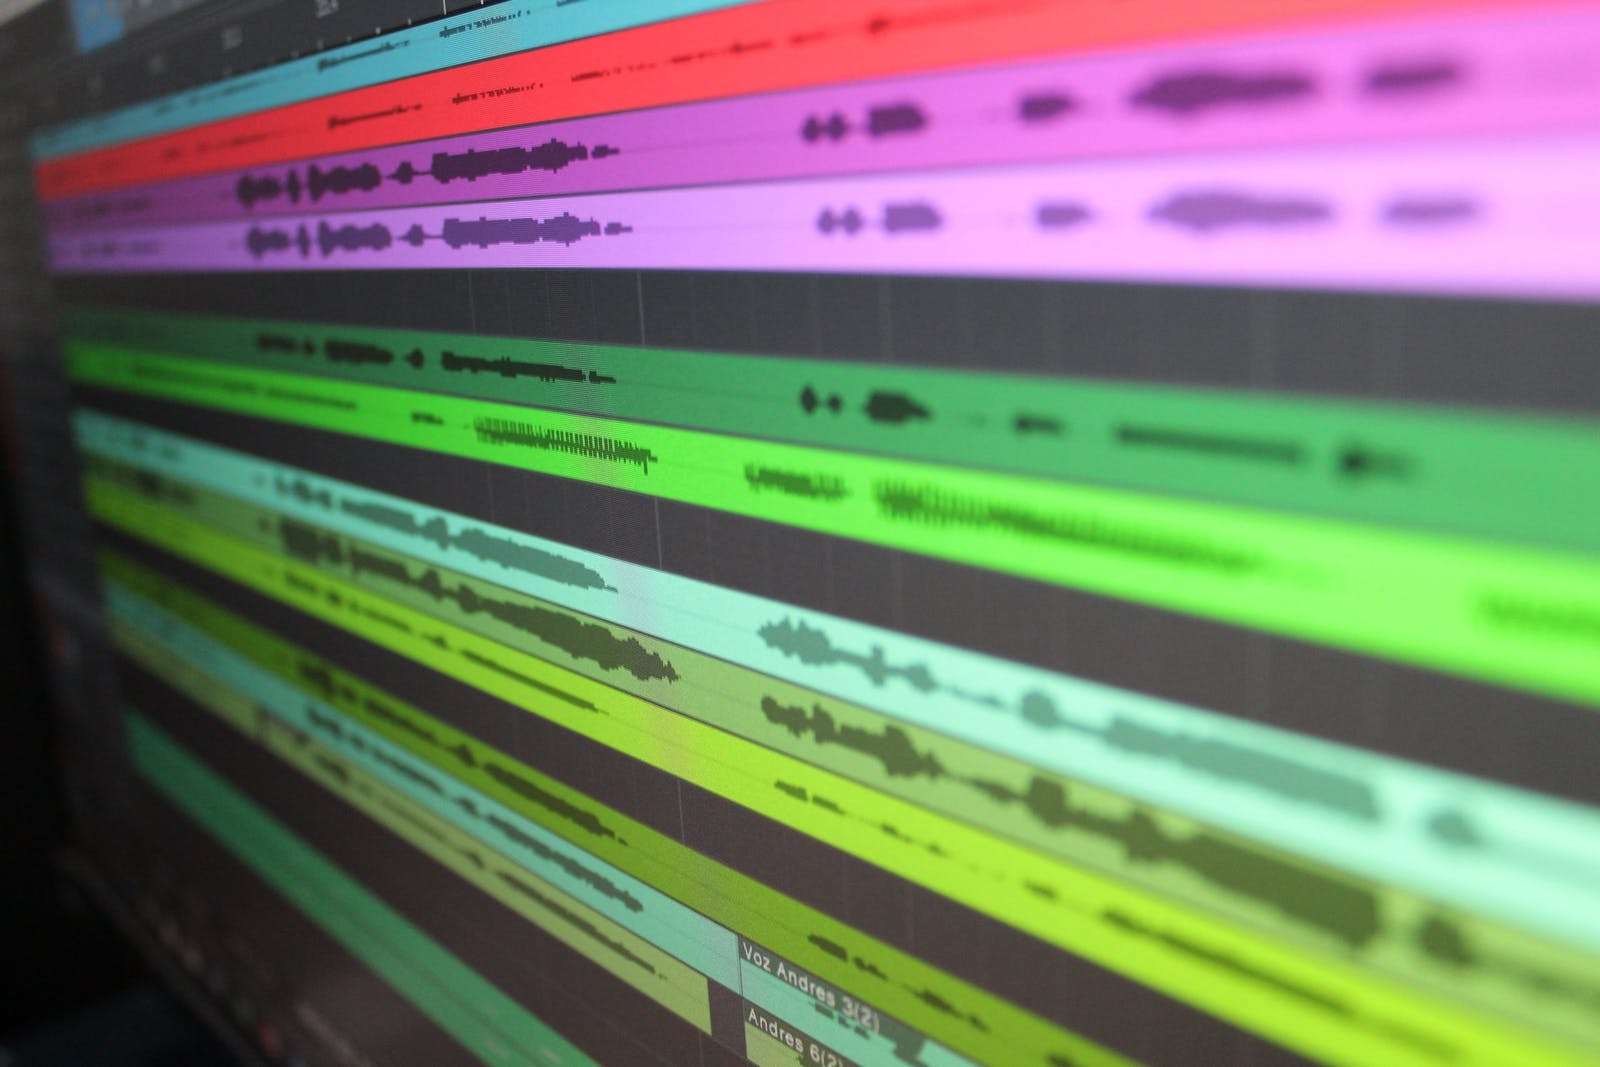 Photo of music production session on a computer screen.